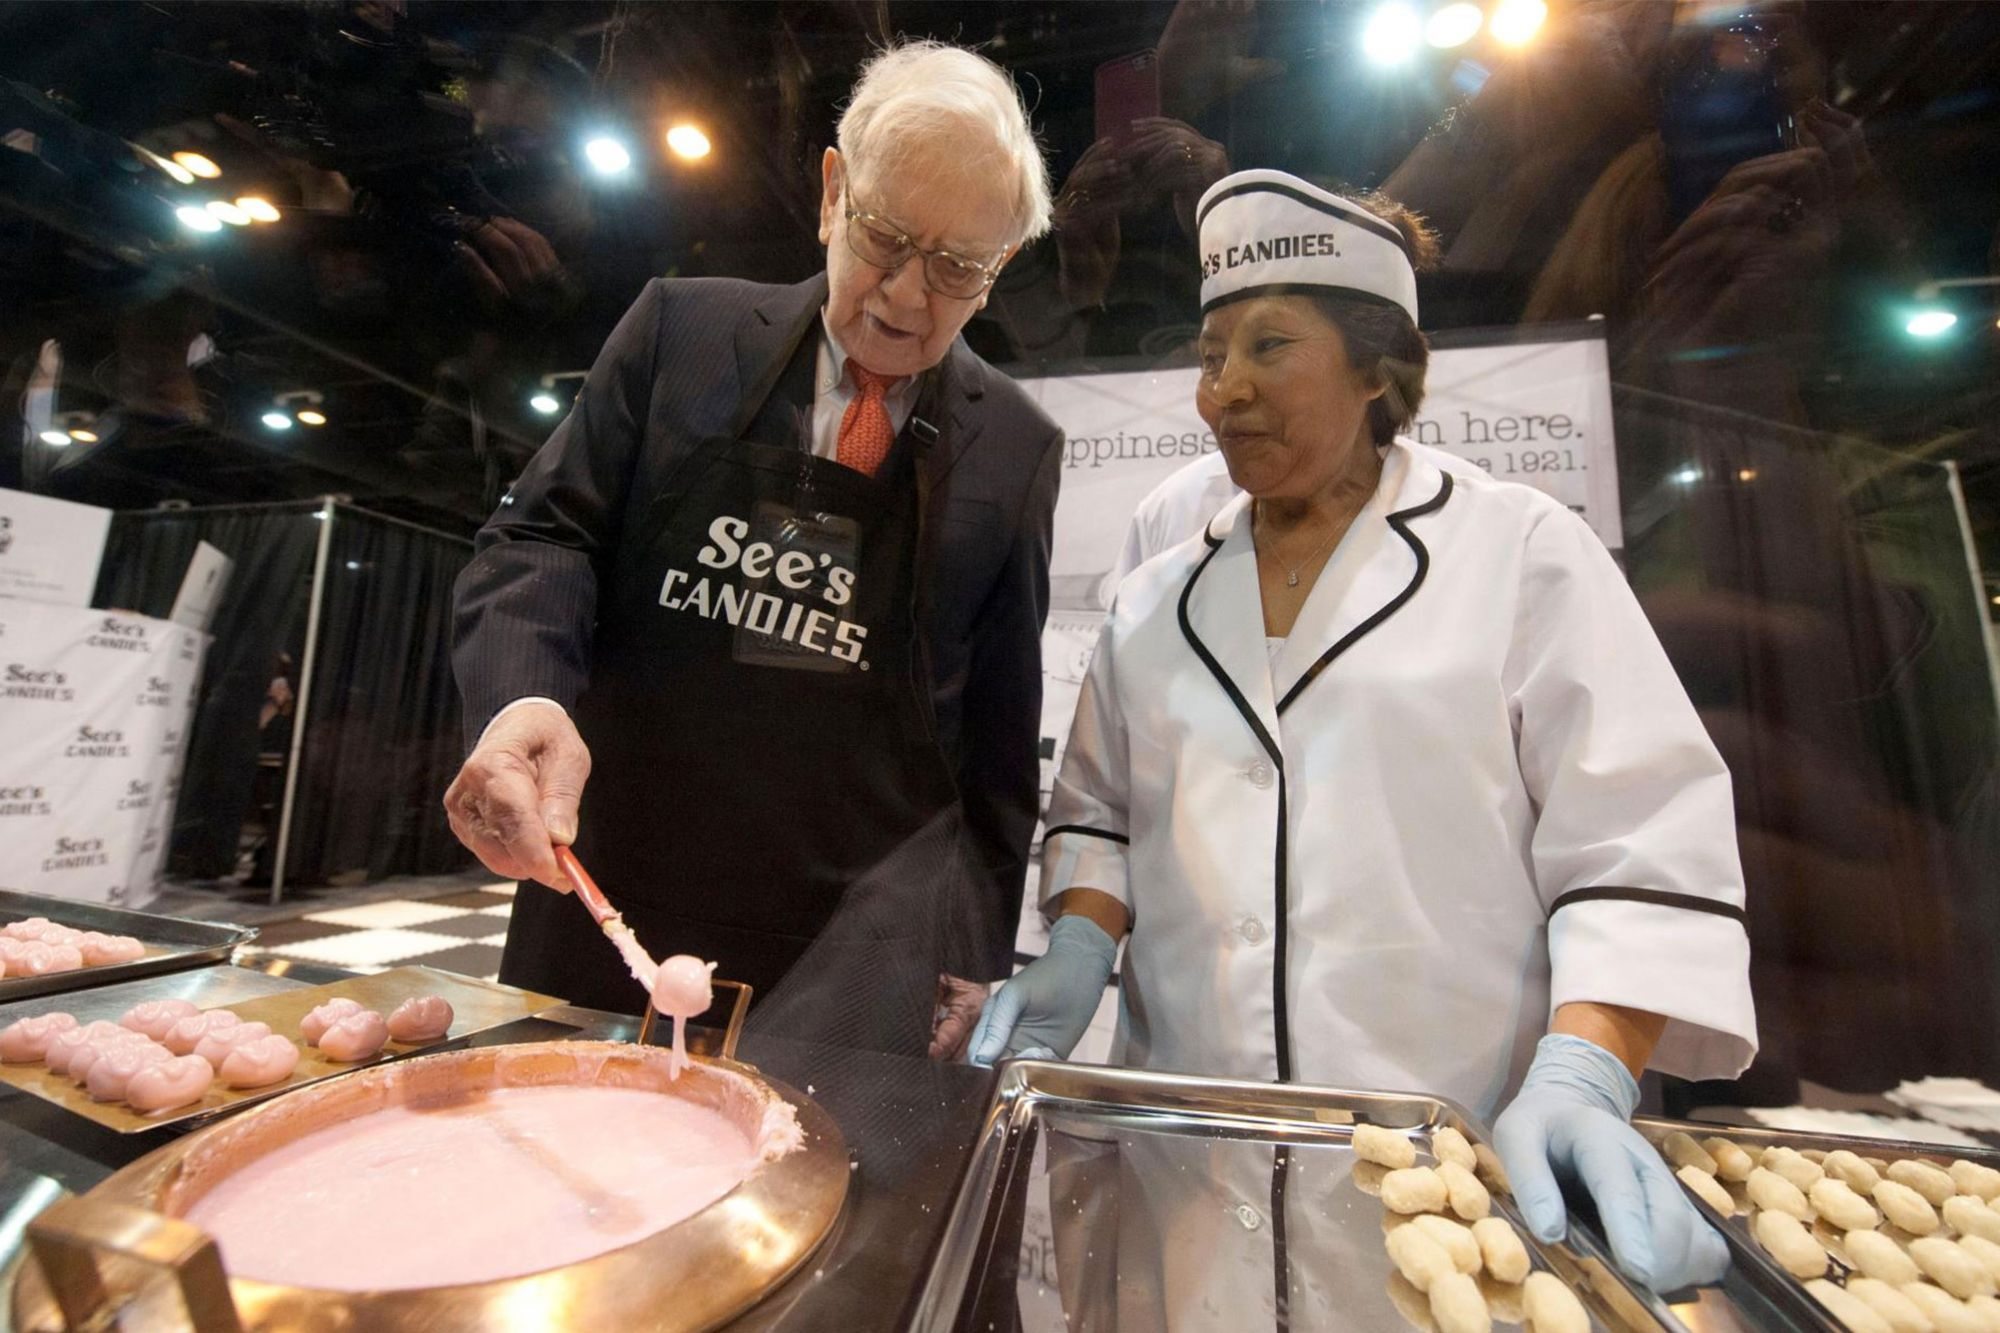 On Valentines Day Warren Buffet Explains Why See's Candy is His 'Dream Business'